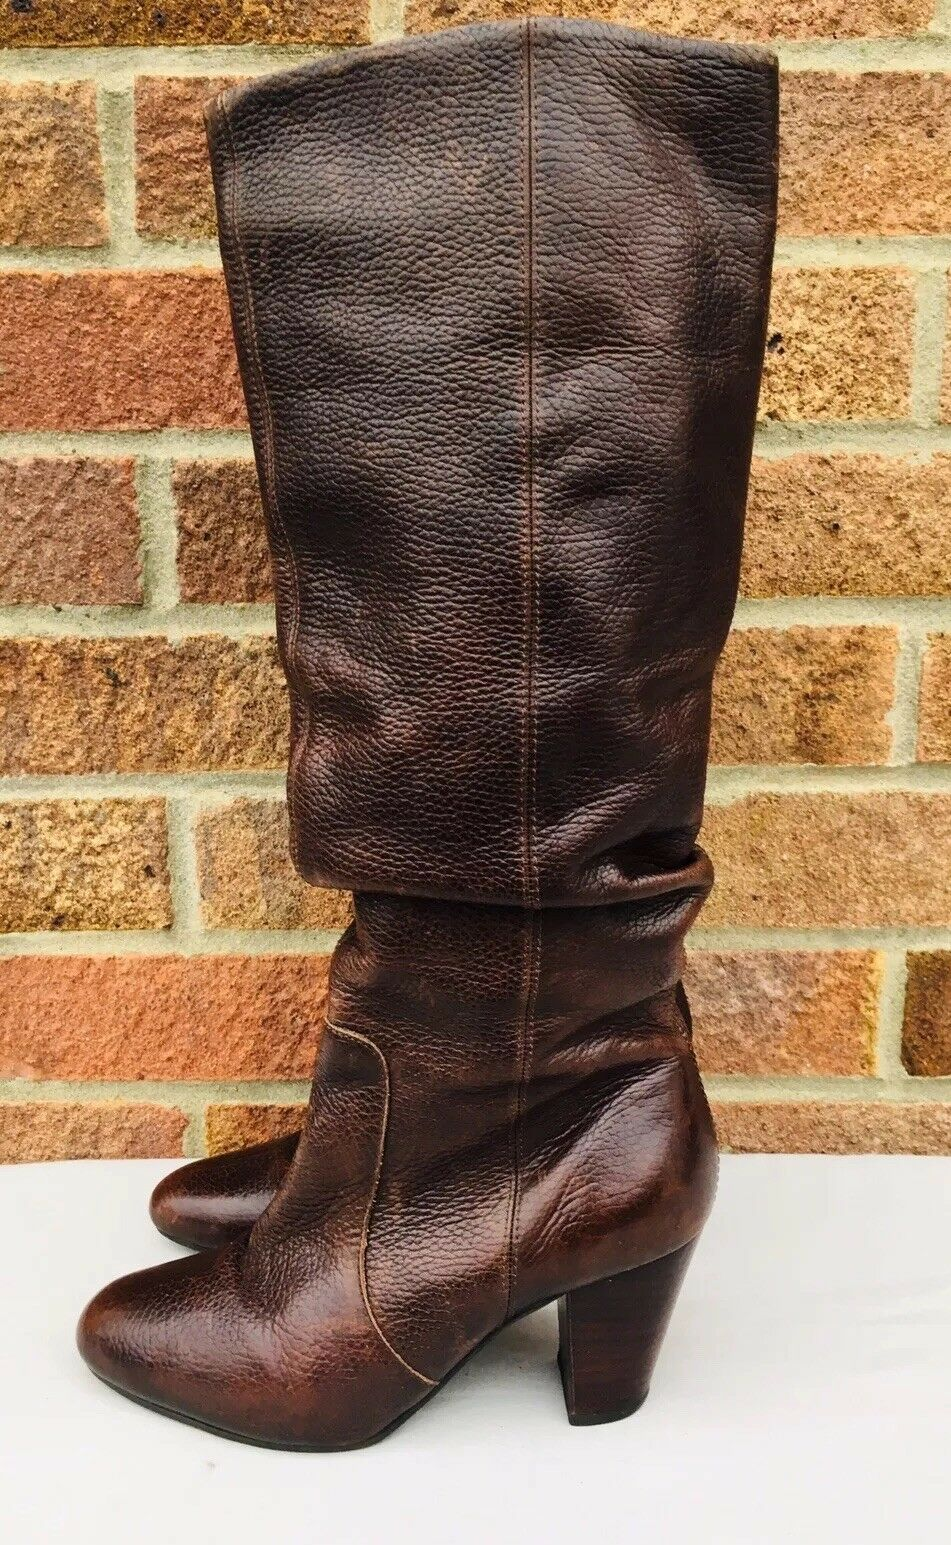 FAITH Ladies Brown Knee High Boots Real Leather 4 36 Chunky Medium Heel  Ruched